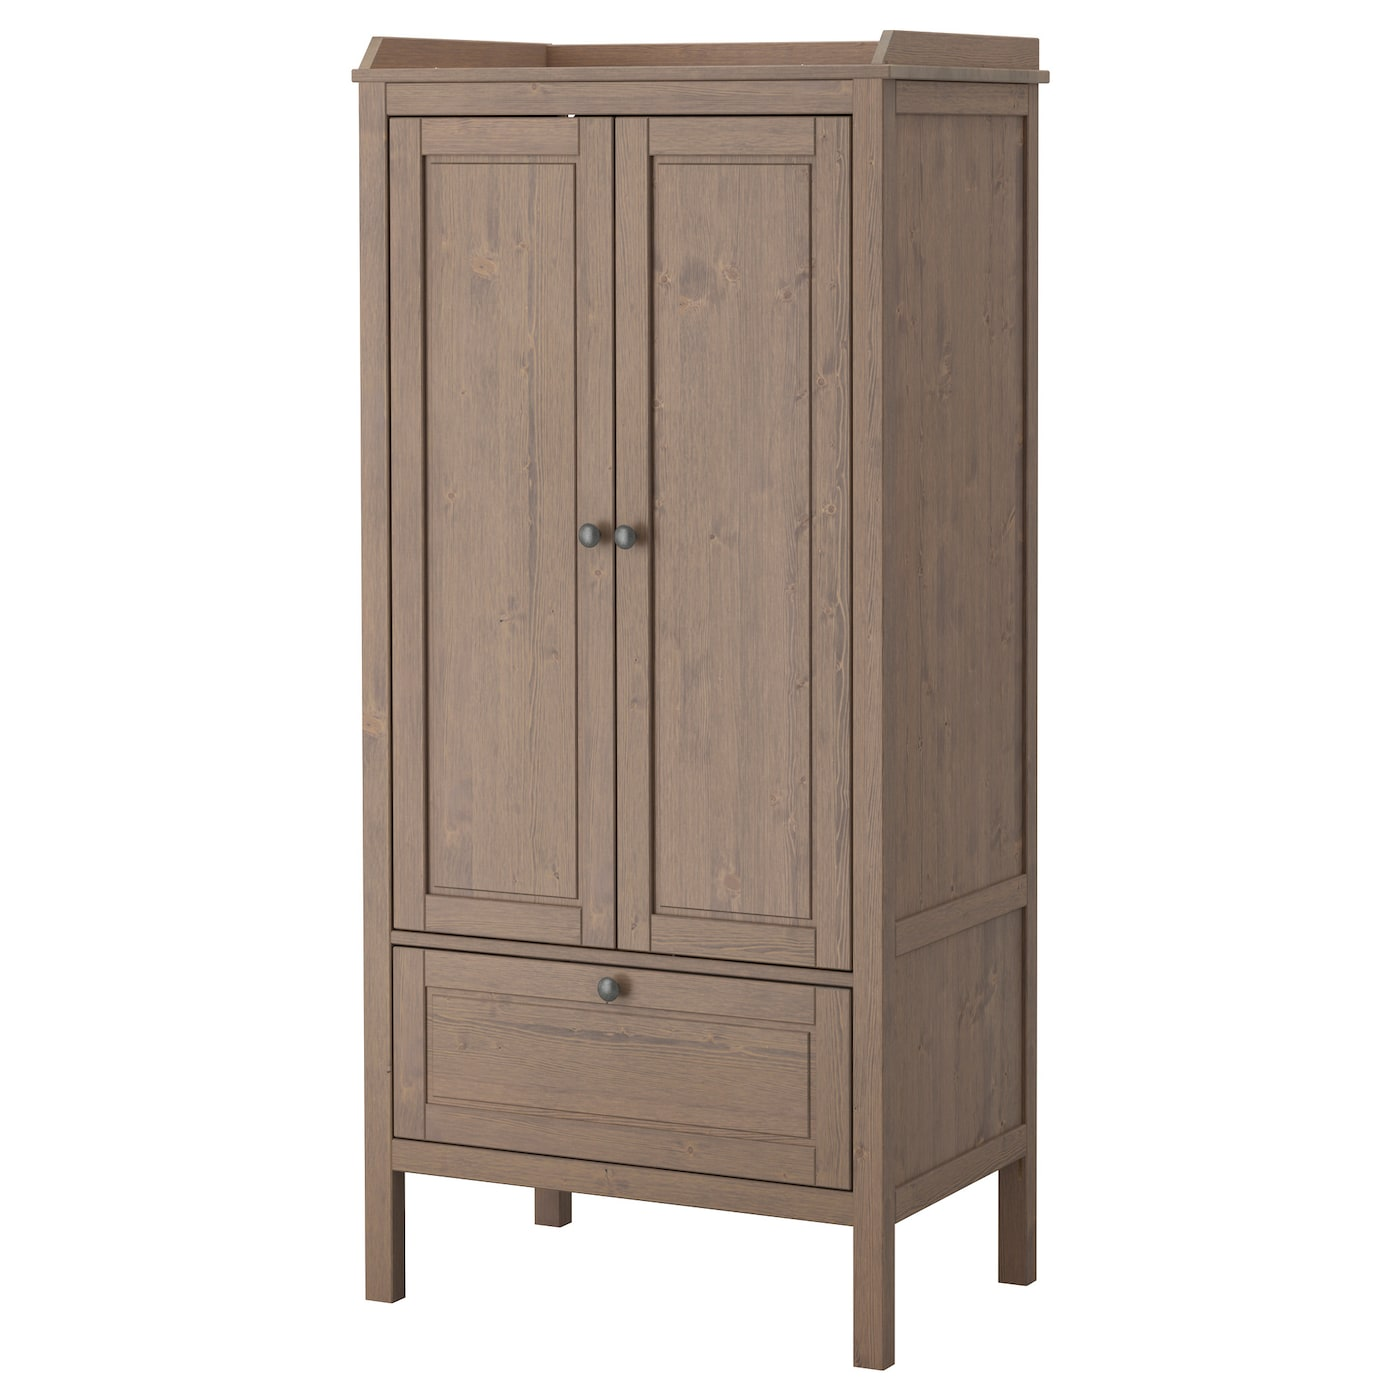 sundvik wardrobe grey brown 80x50x171 cm ikea